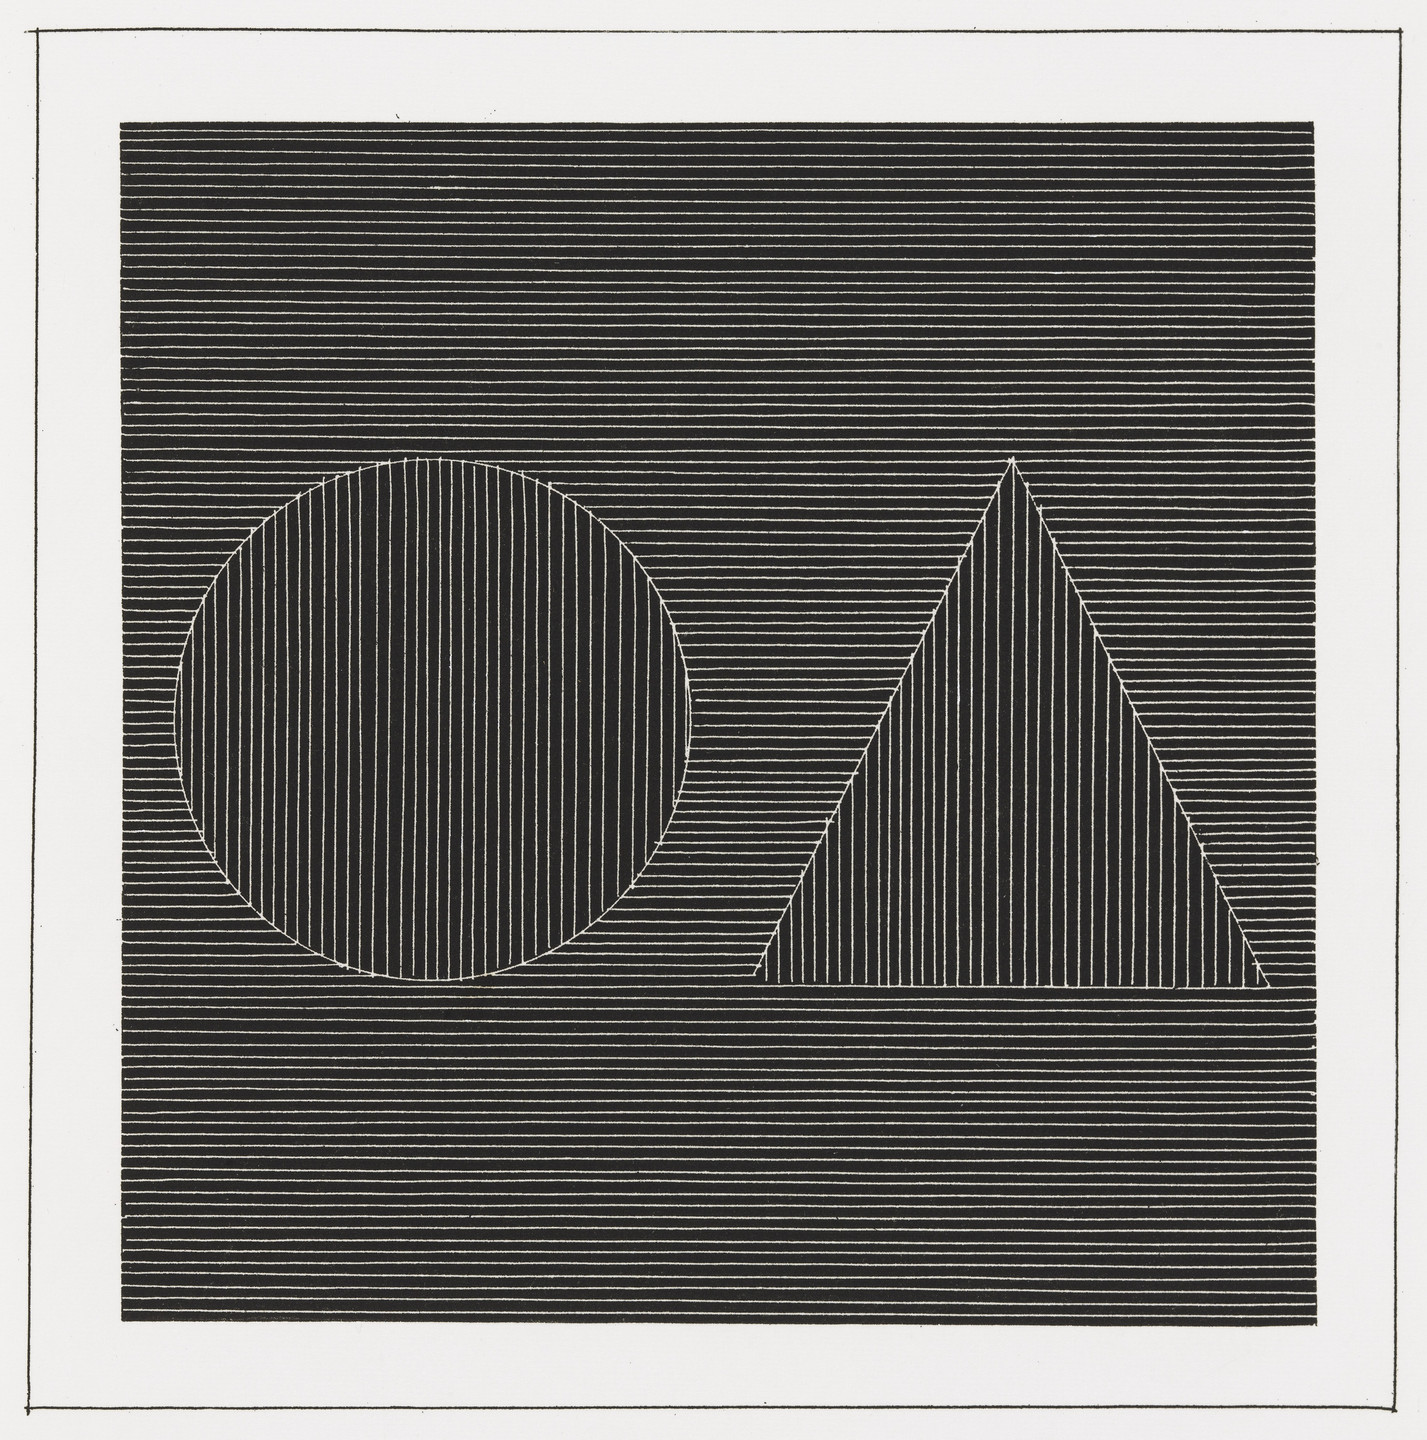 Sol LeWitt. Plate (folio 13) from Six Geometric Figures and All Their Combinations, Volume I. 1980